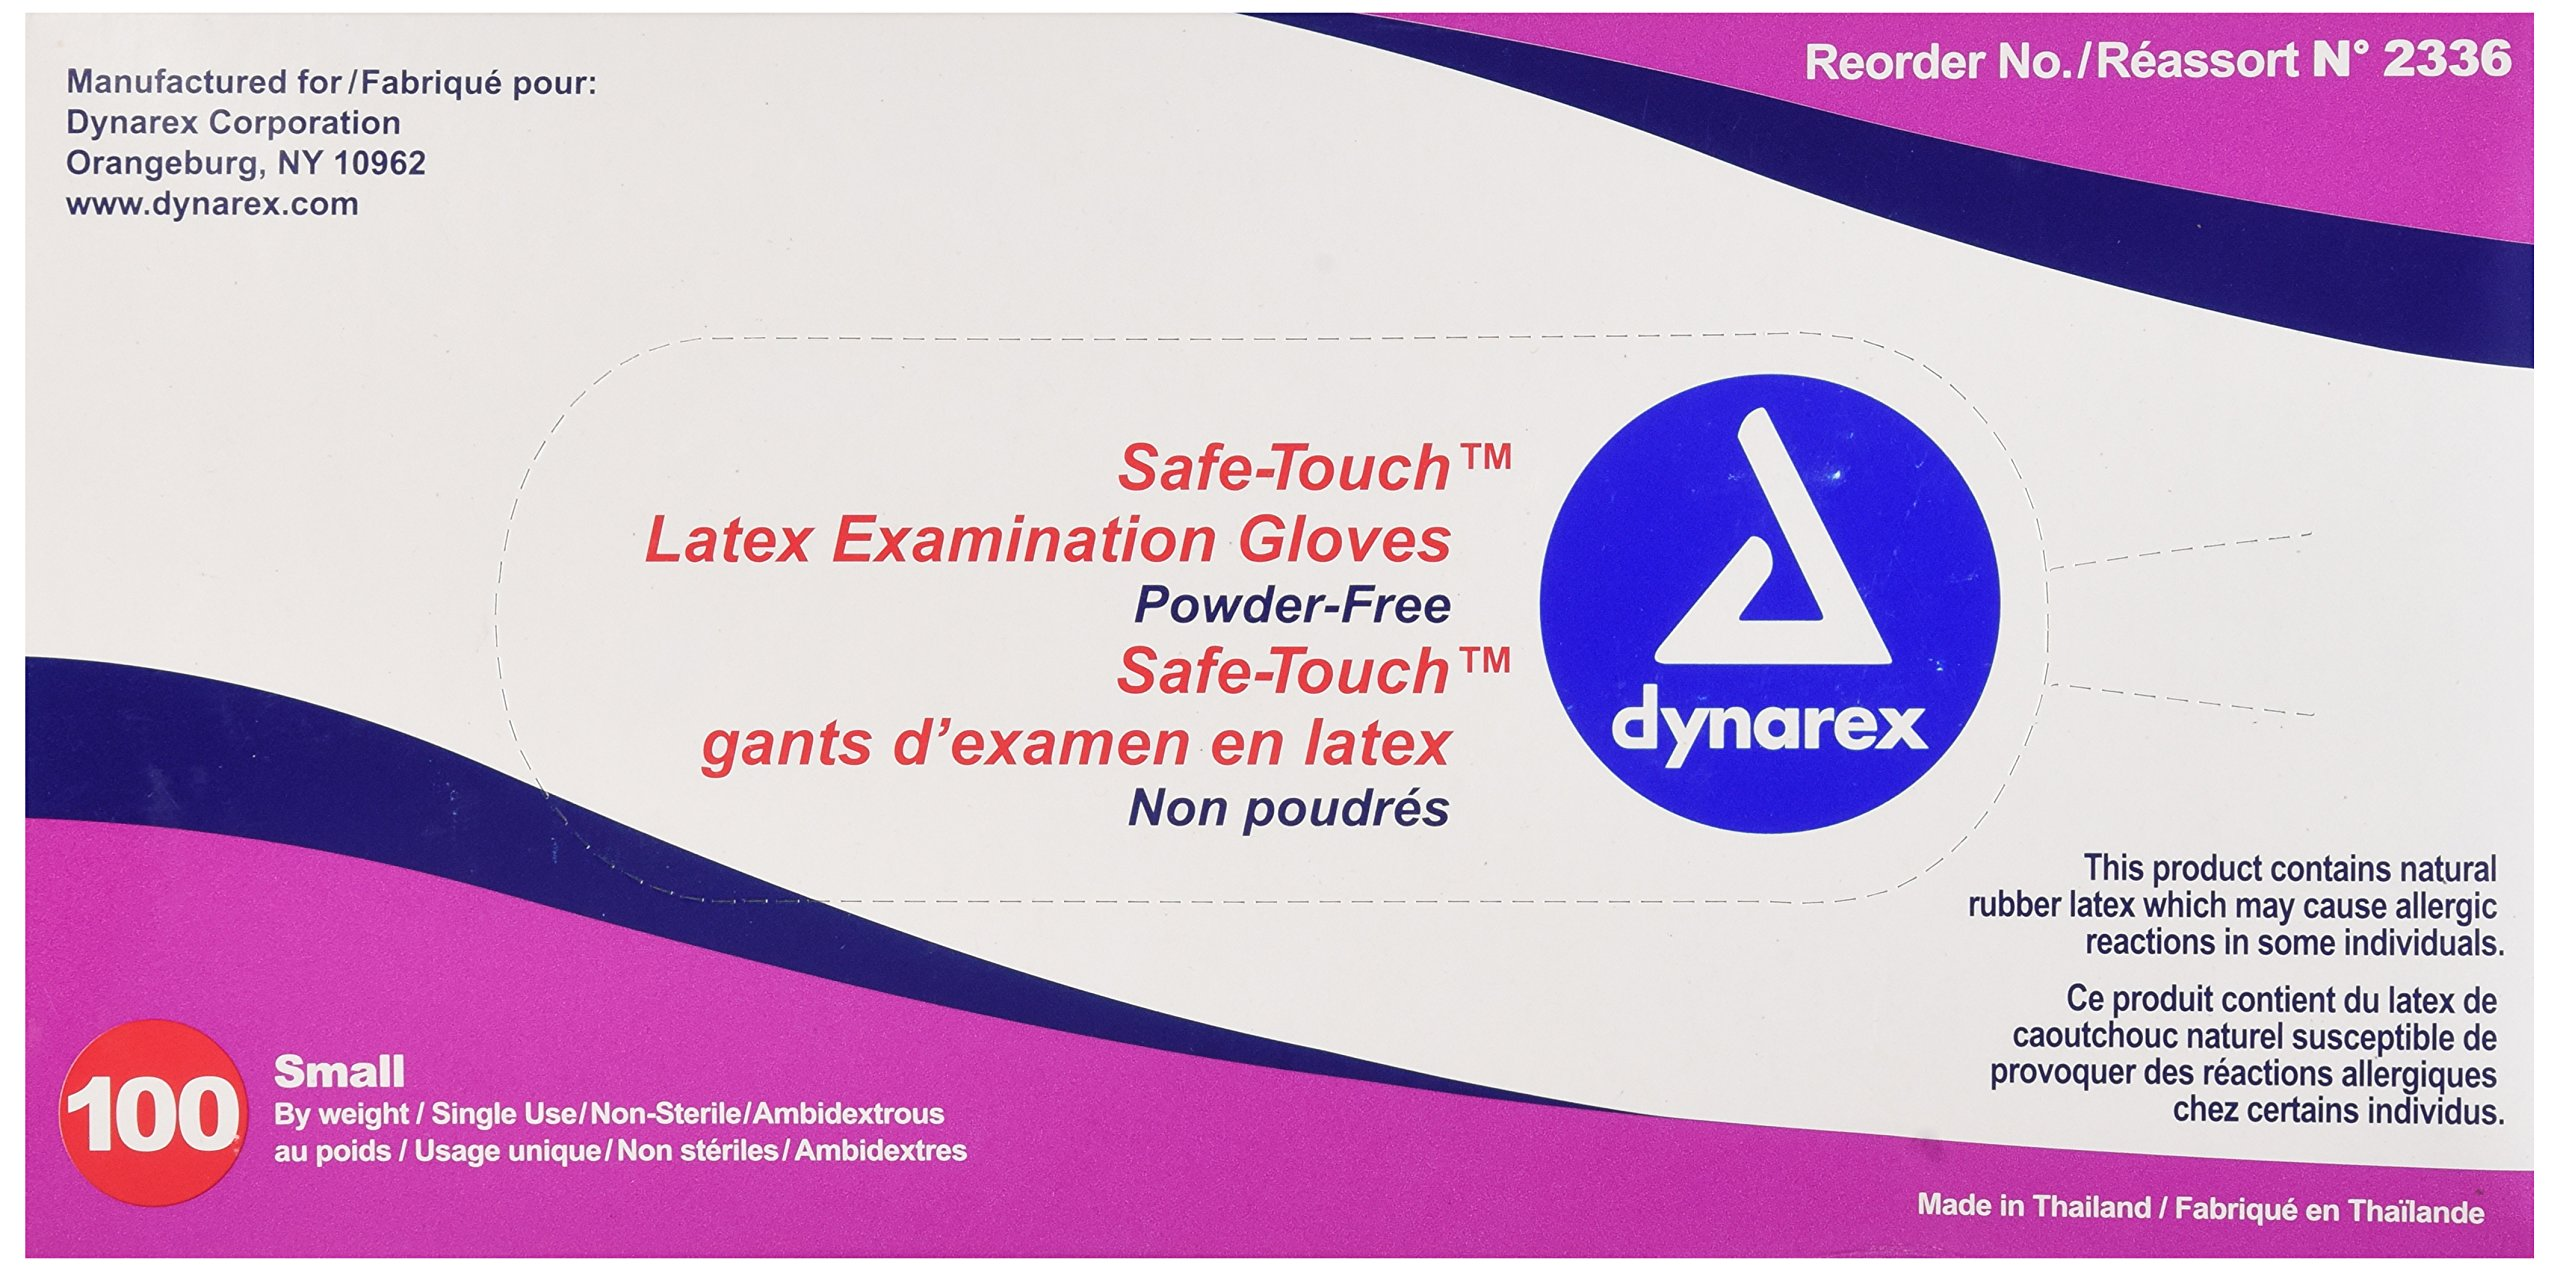 Dynarex Safe-Touch Latex Gloves, Powder-Free, Small, Box/100